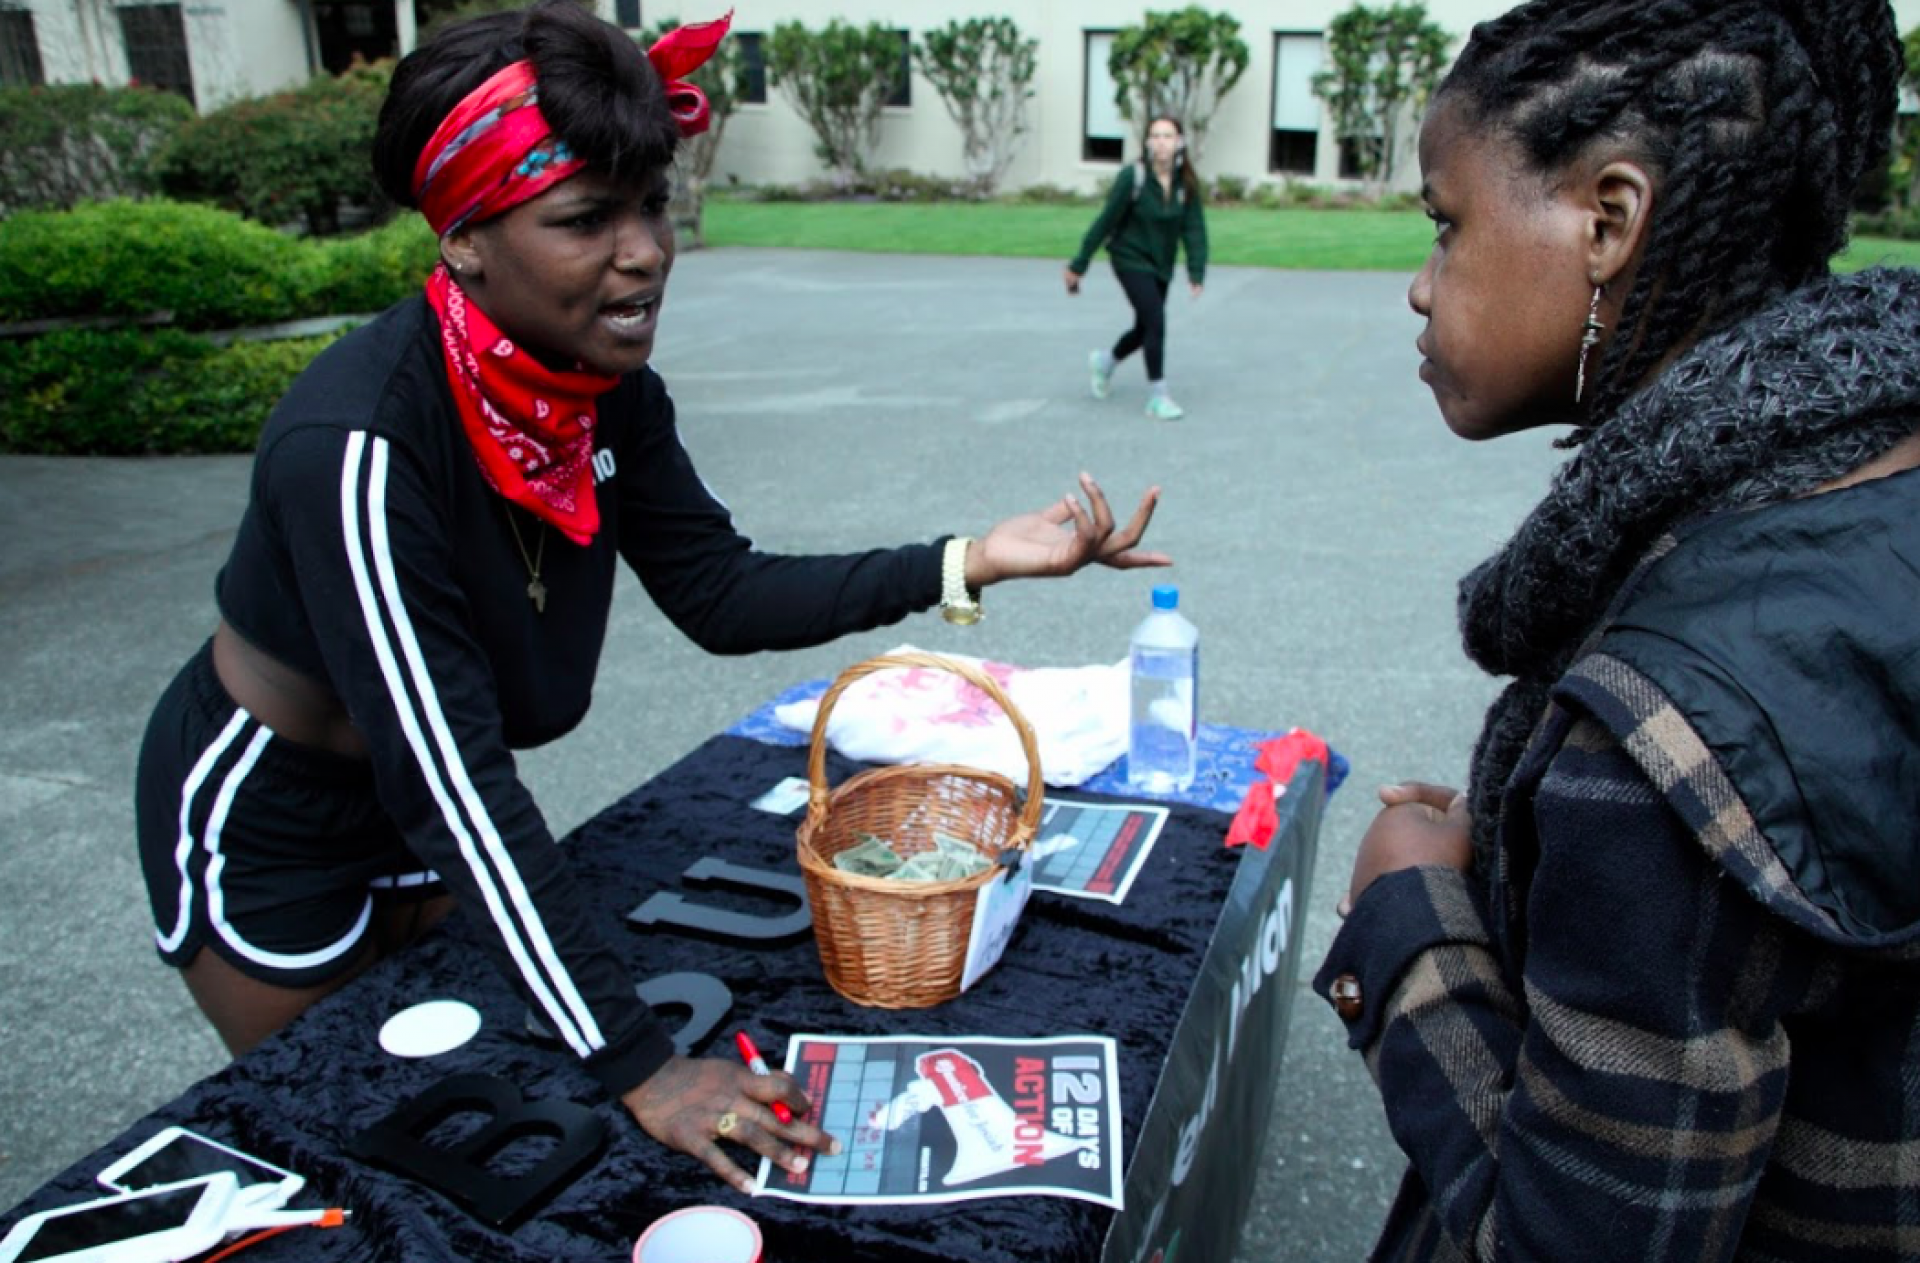 Barbara Singleton informs another student about the upcoming events taking place, leading up to the one-year anniversary of David Josiah Lawson's death that took place on April 15, 2017. Photo by Garrett Goodnight.